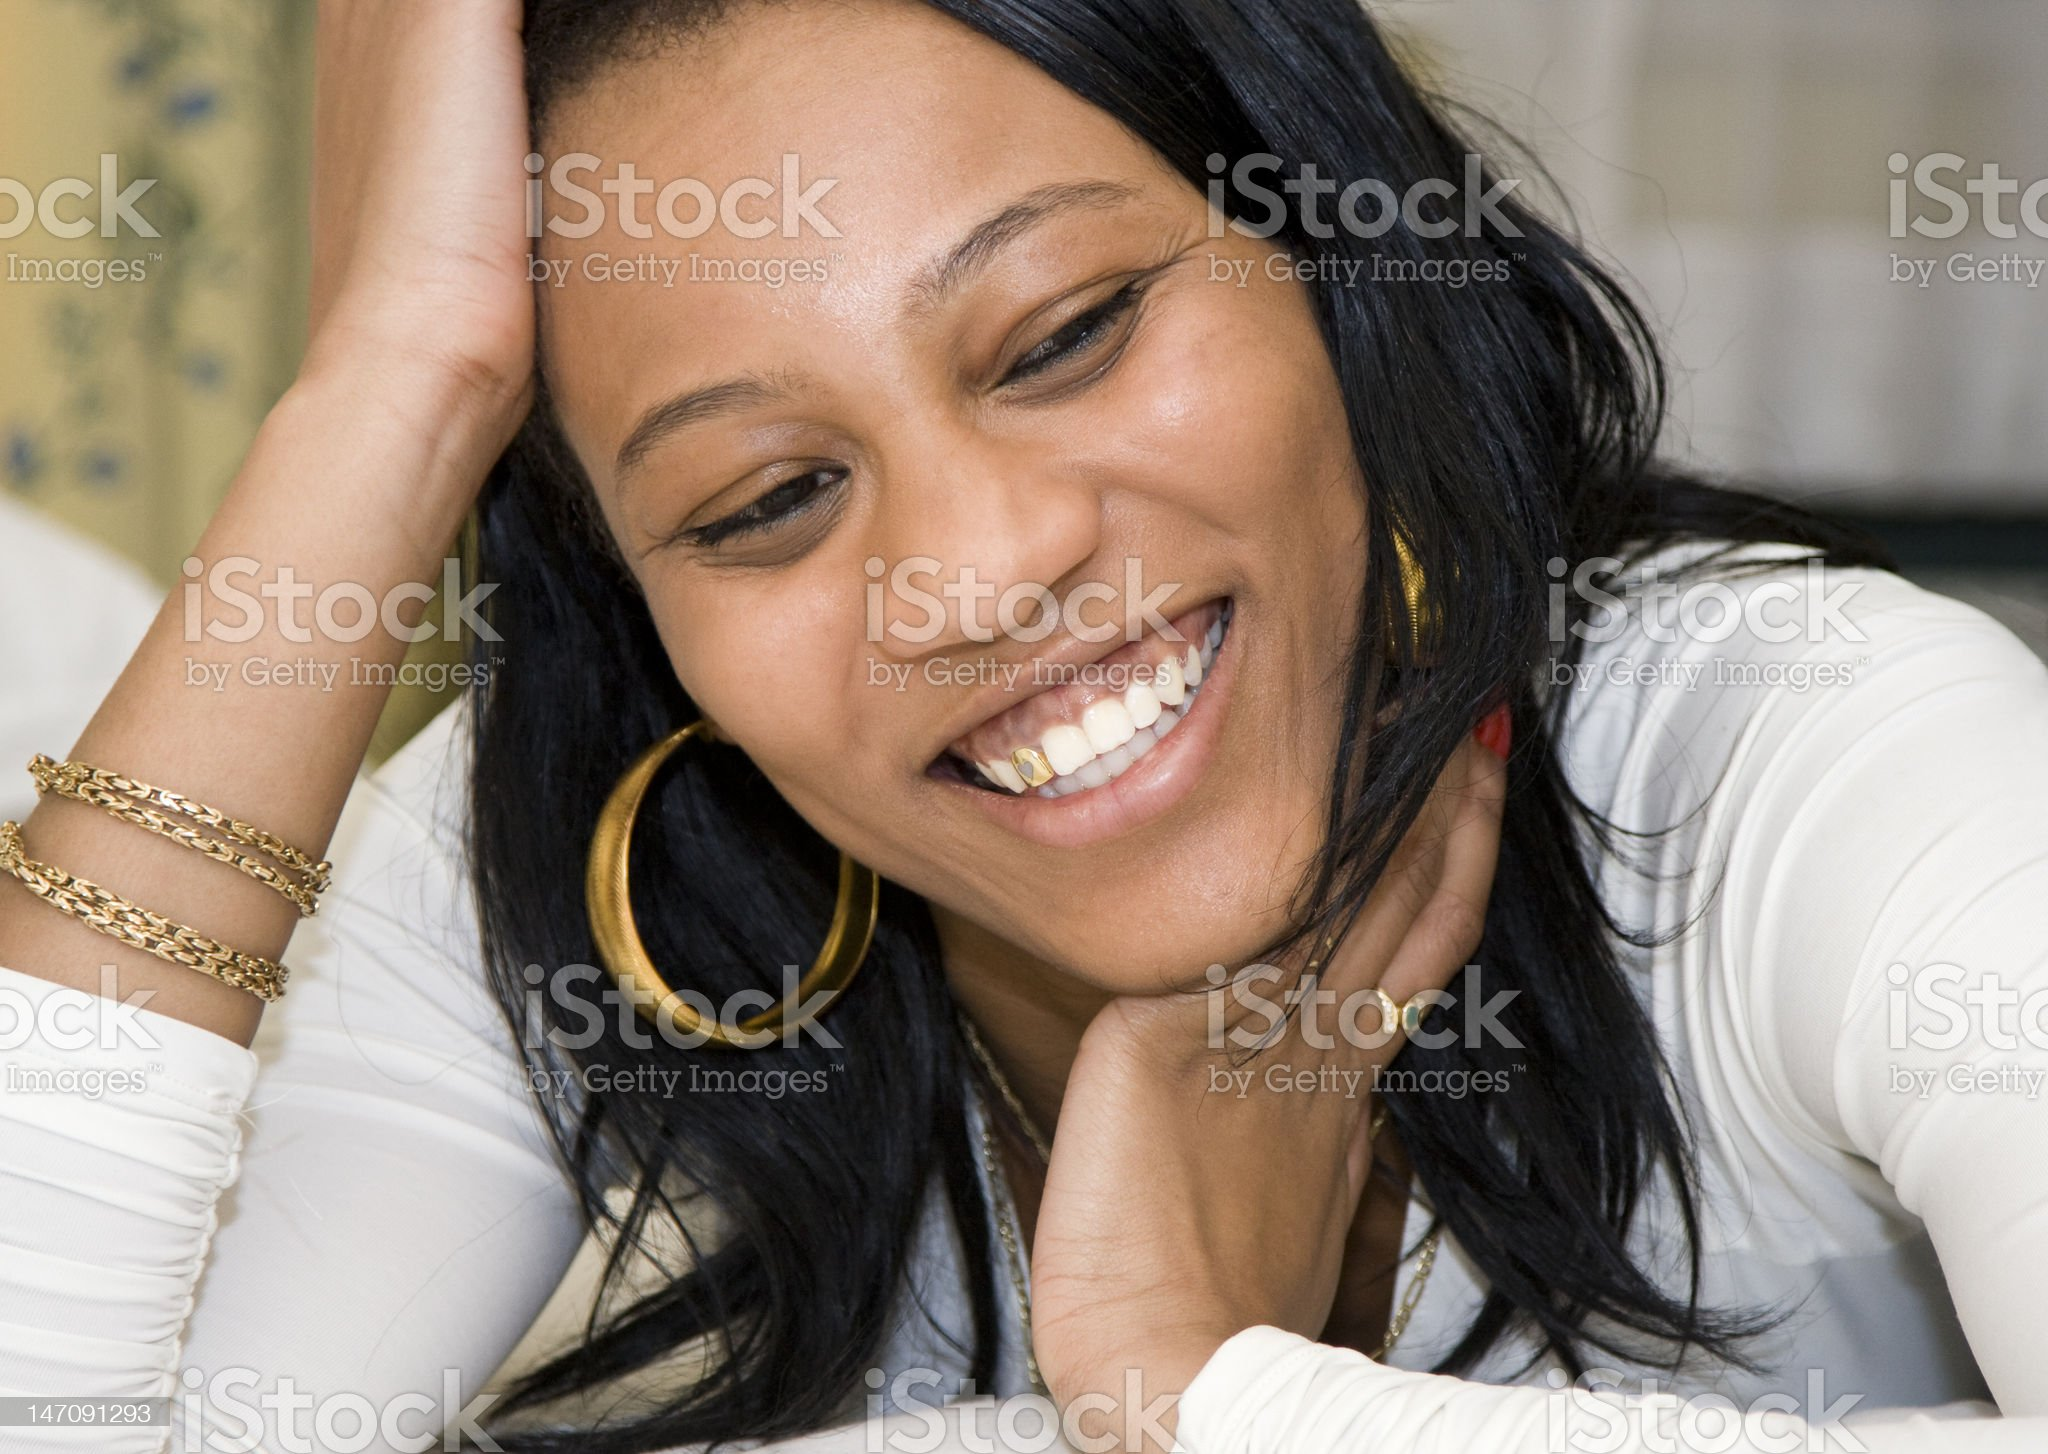 Young African American Female Smiling royalty-free stock photo